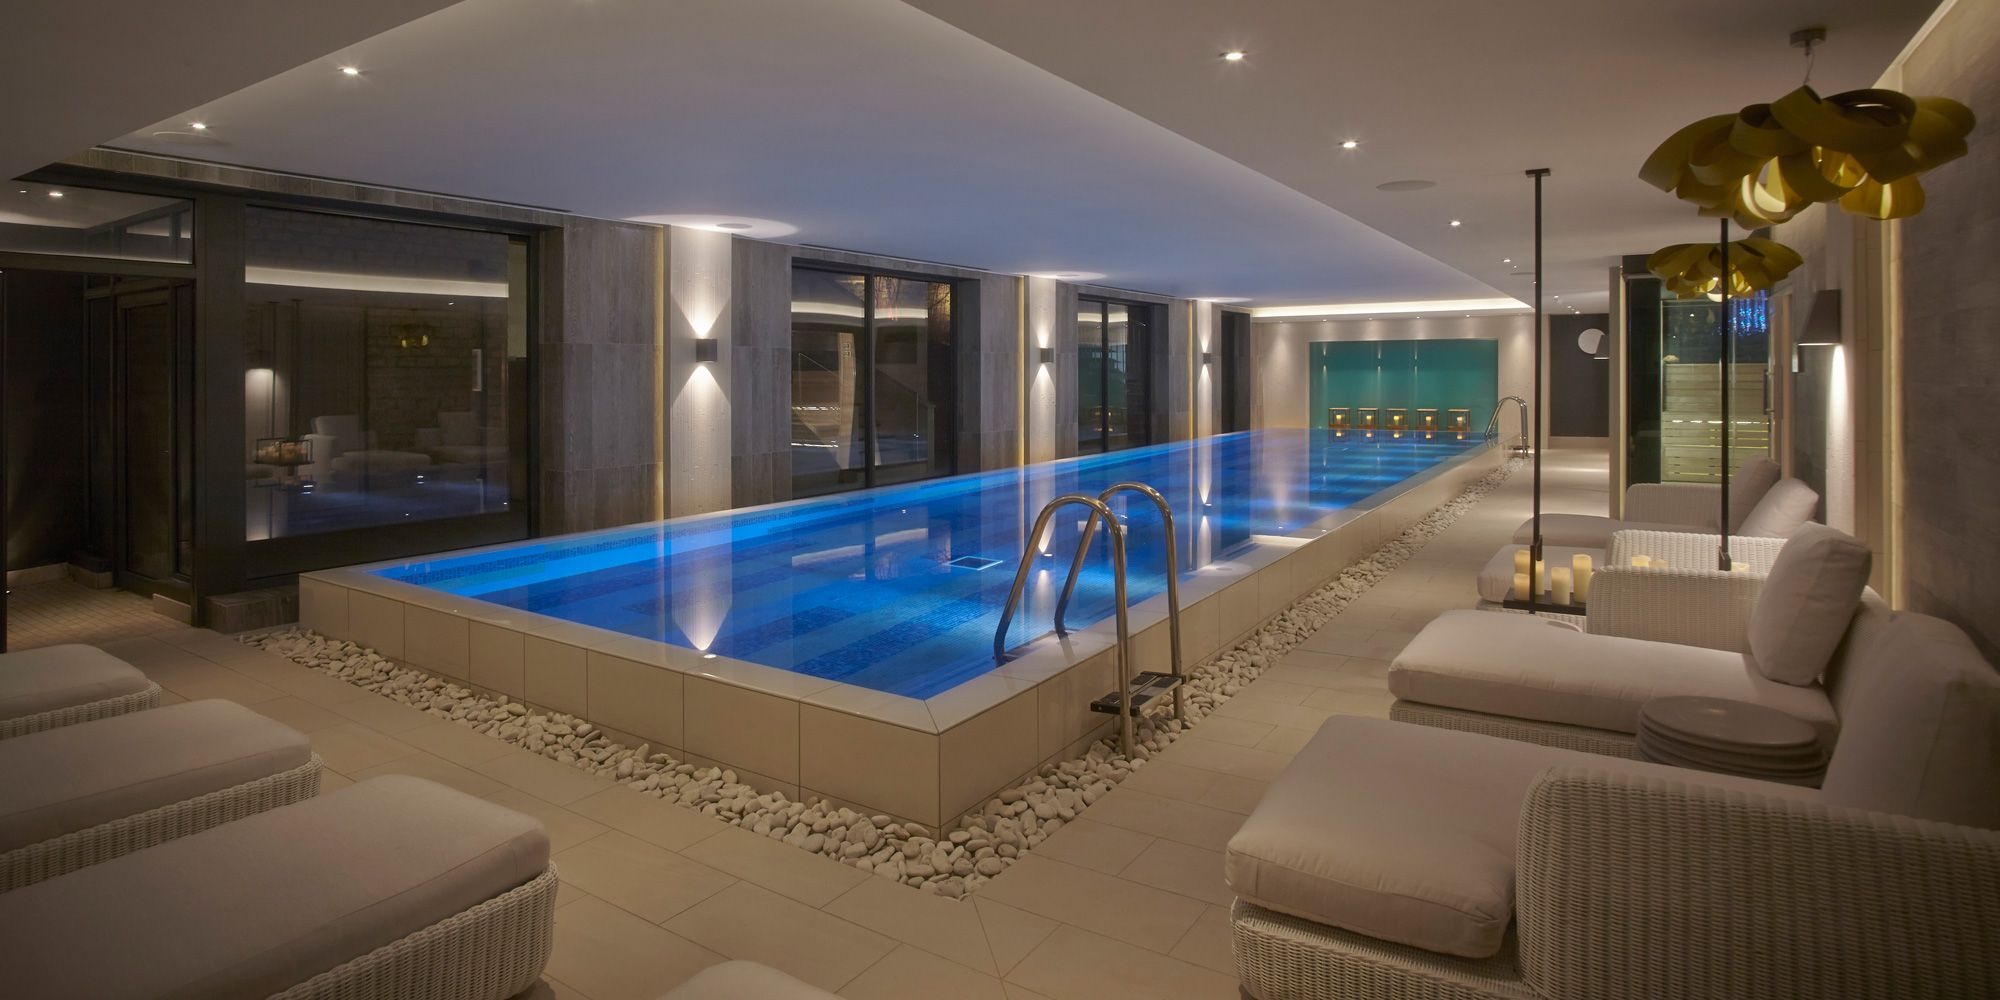 Luxury Spa In The Cotswolds Dormy House Hotel Spa Indoor Pool Design Indoor Swimming Pool Design Pool Houses